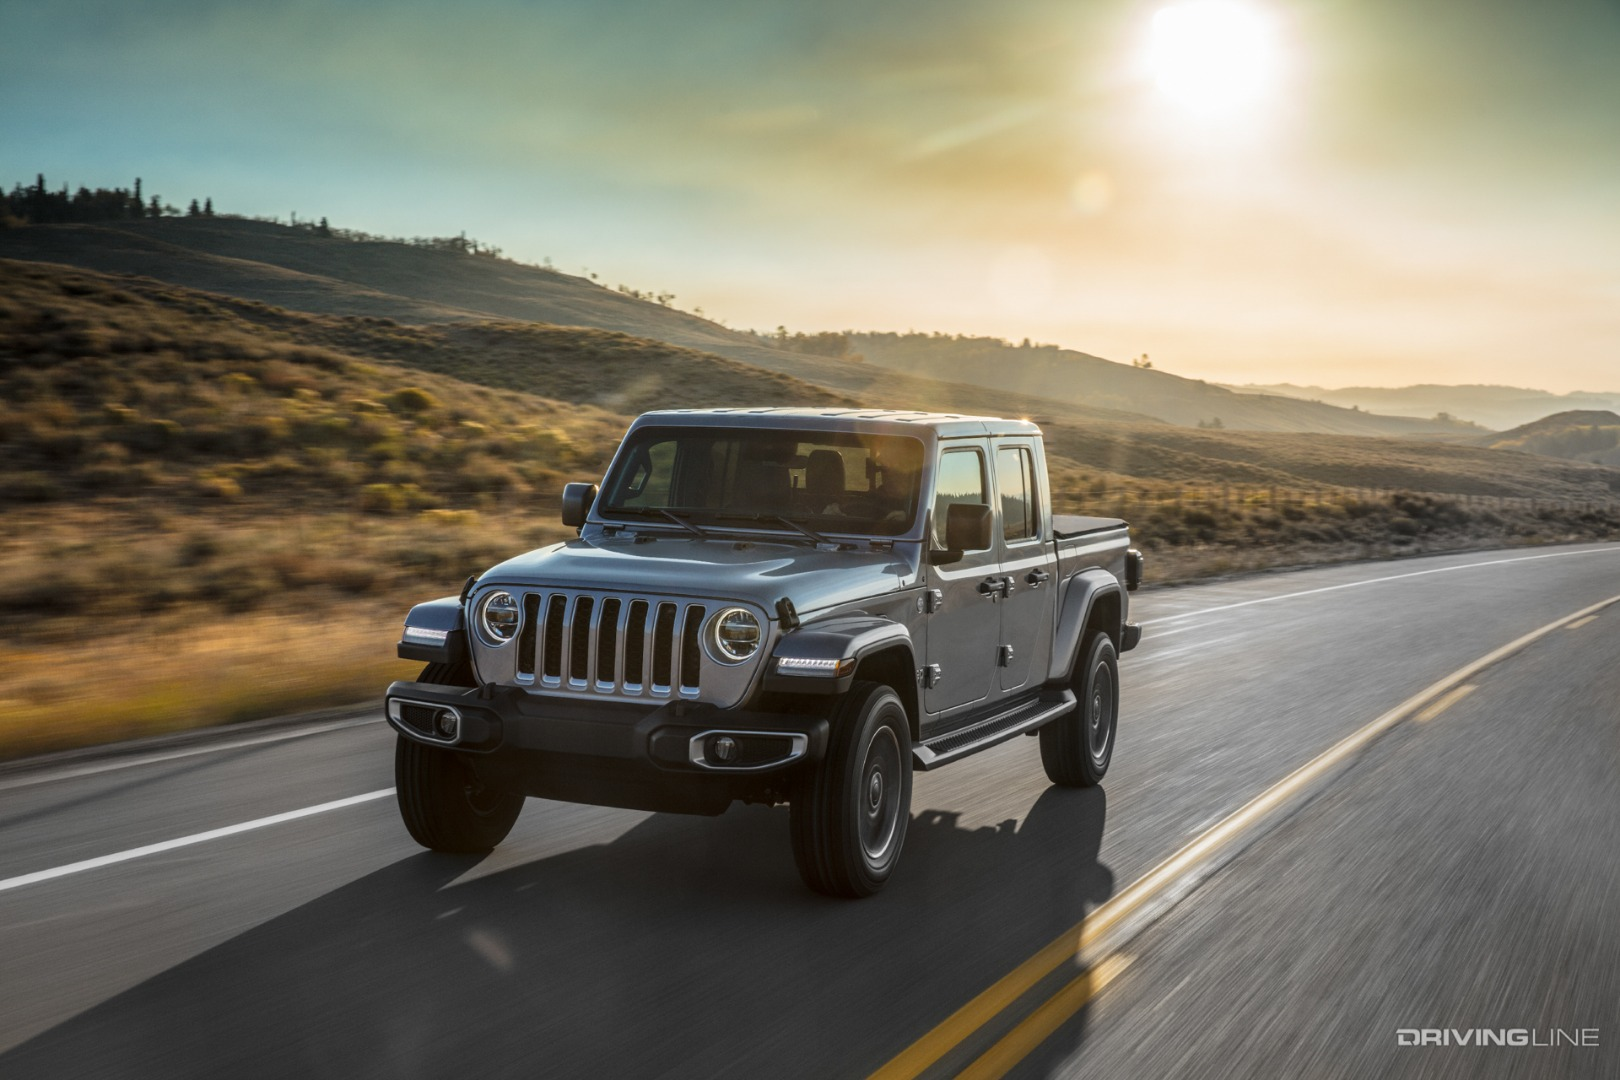 2020 Jeep Gladiator Unveiled | DrivingLine